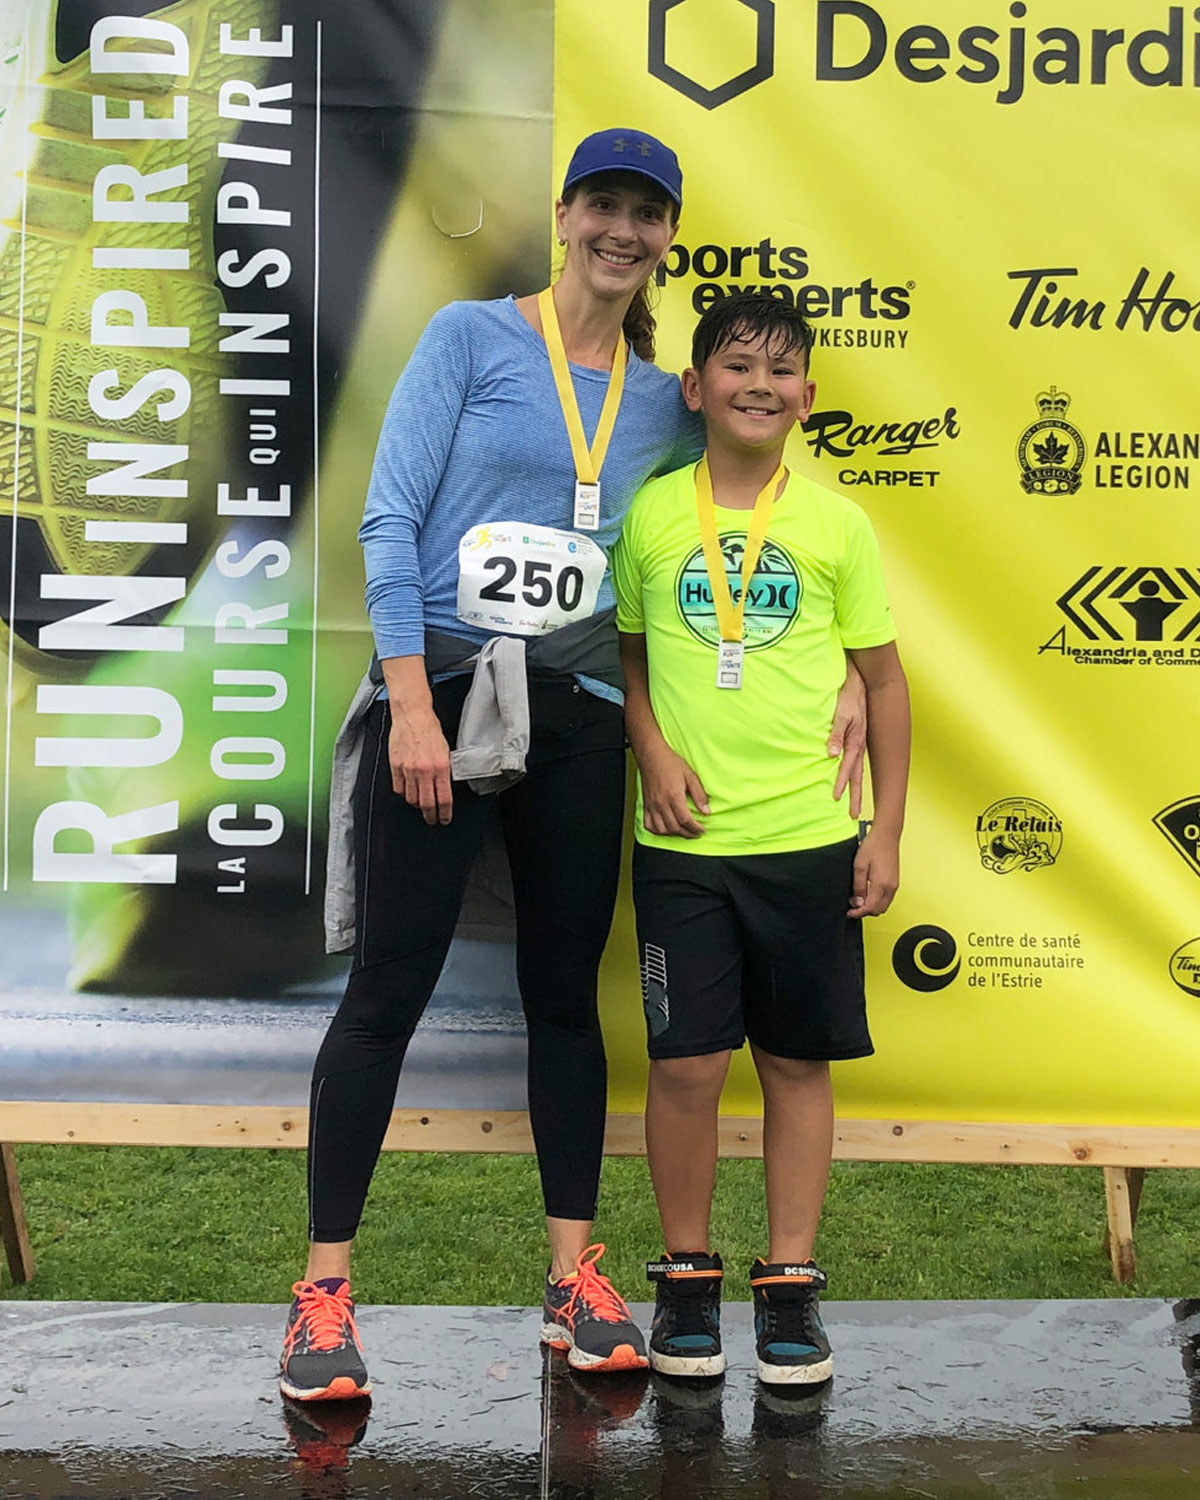 Chantal Secours and son Pierce Liu after running a 5K in Alexandria, ON. September 2019.